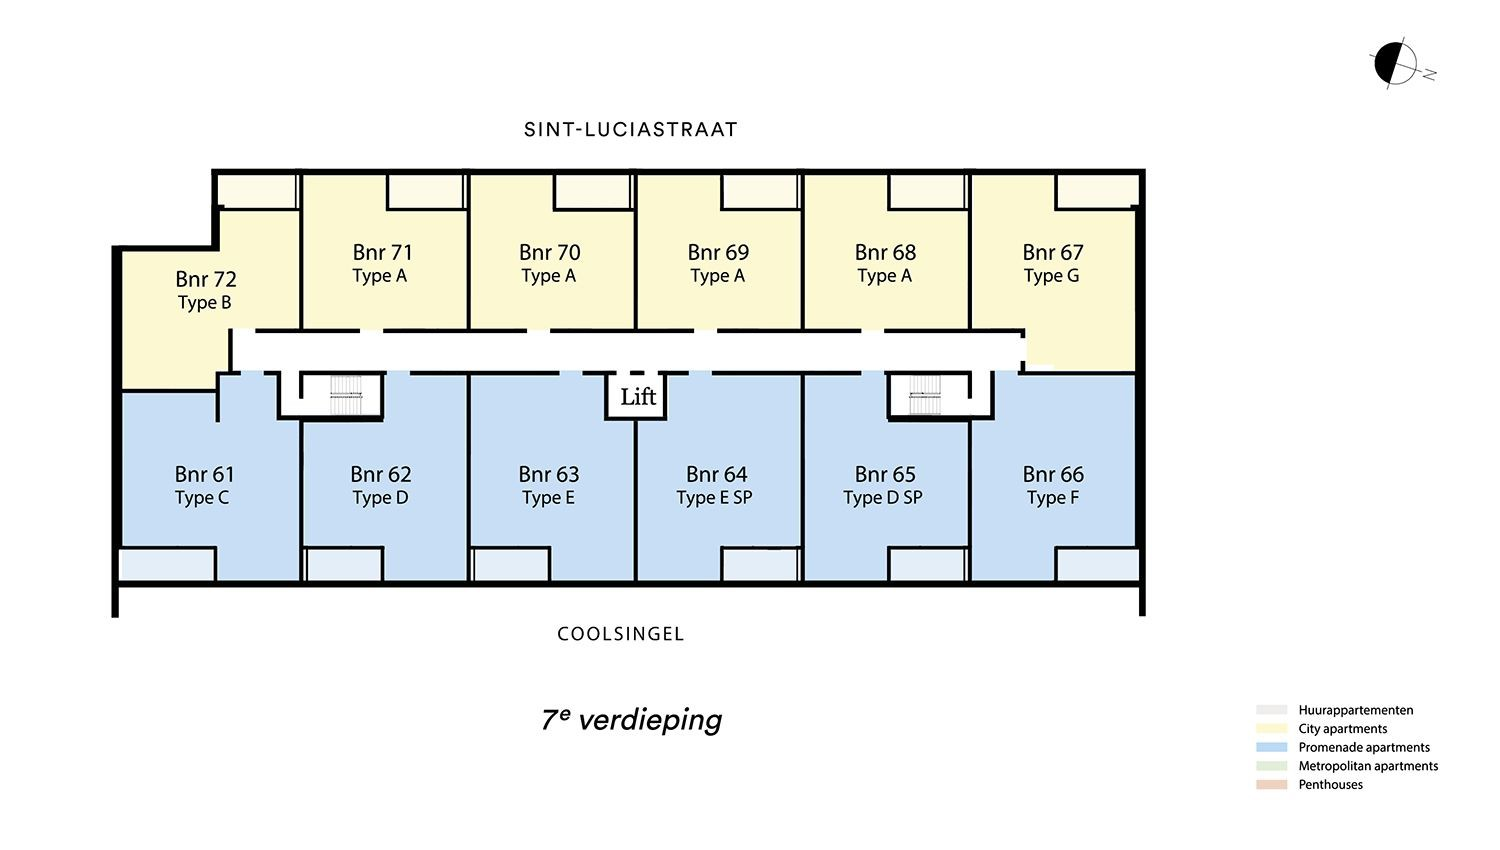 Floor plan verdieping 7 Type A - City apartment N� 75 coolsingel